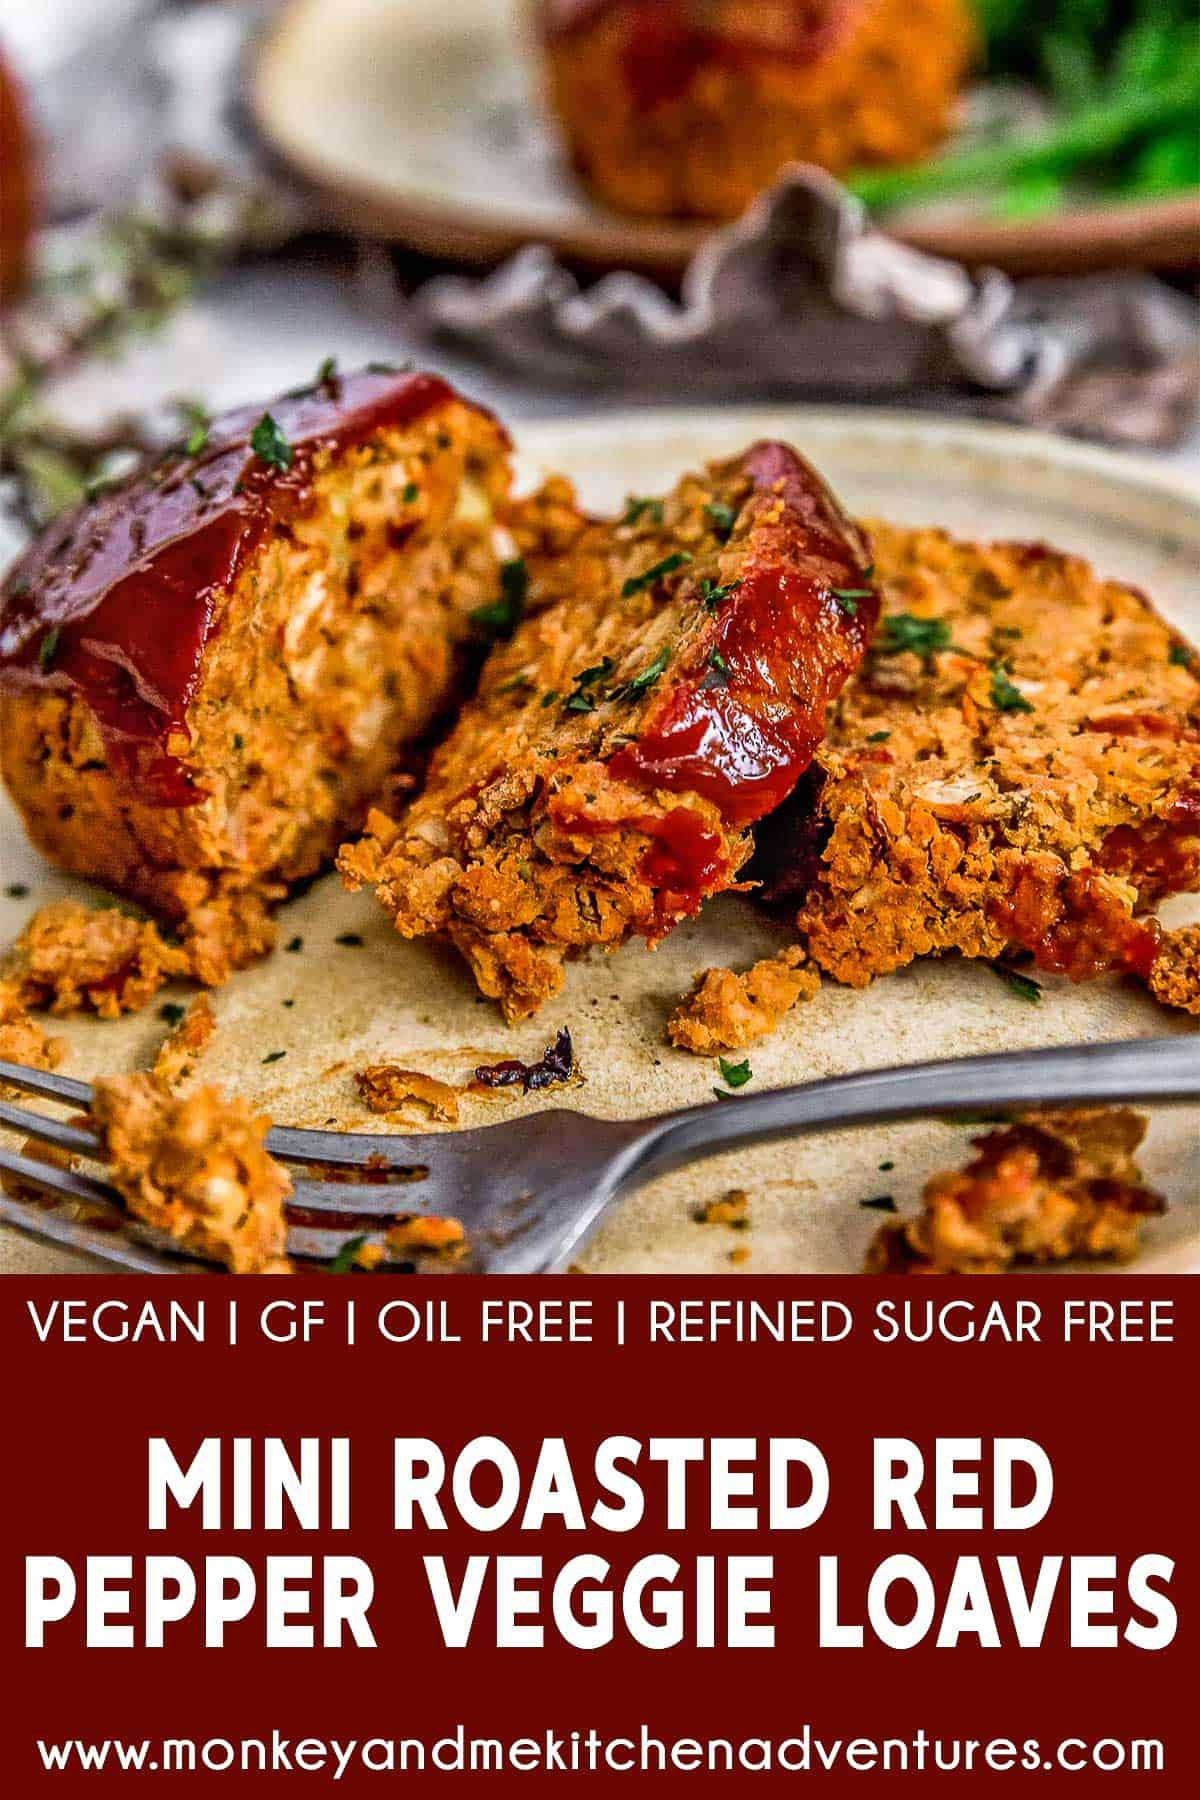 Mini Roasted Red Pepper Veggie Loaves with text description